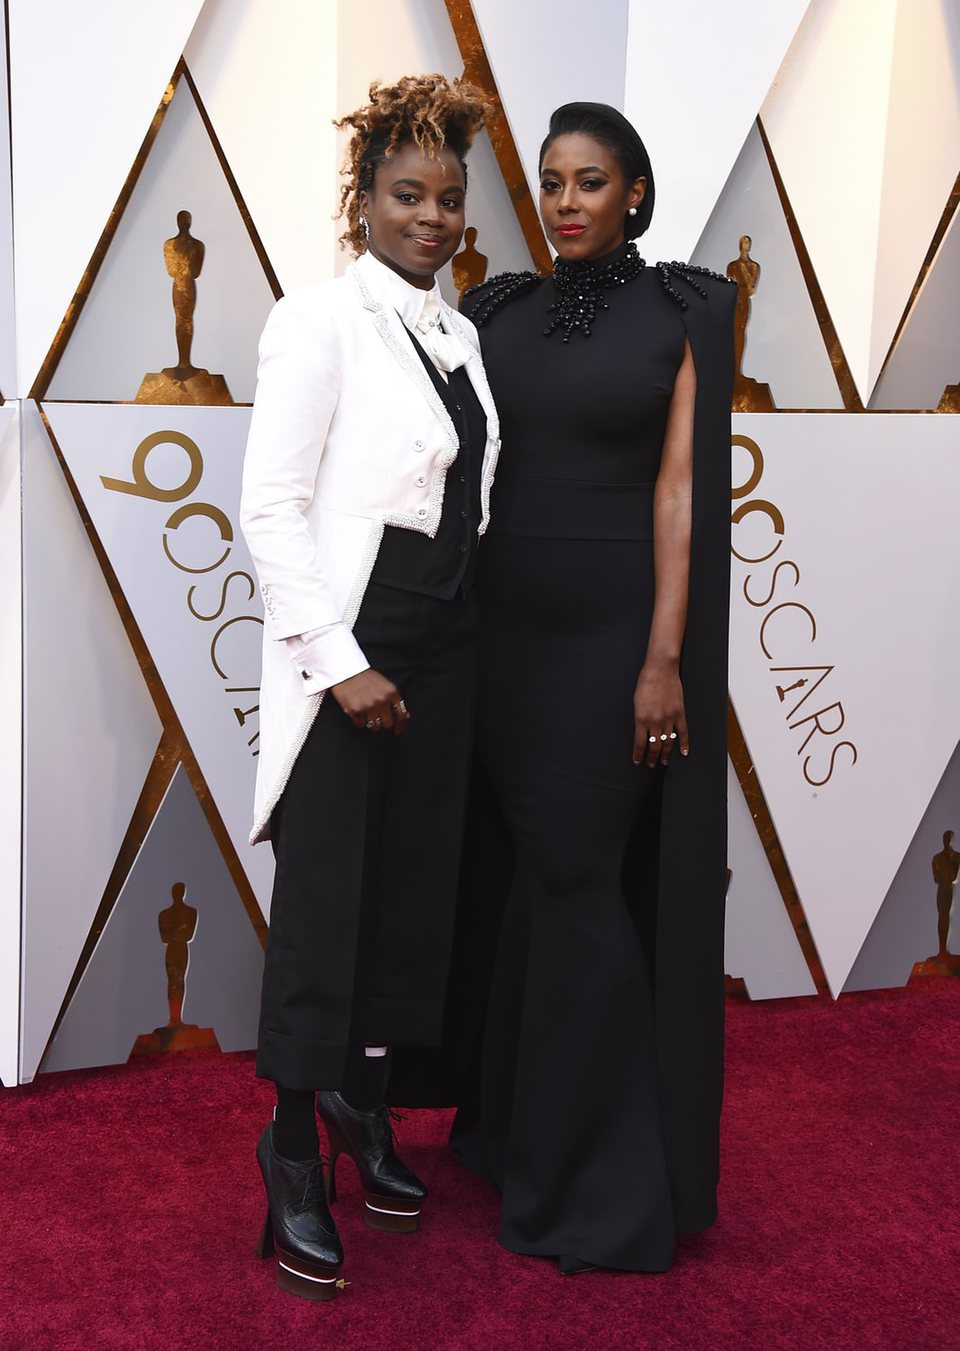 Dee Rees and Sarah M. Broom at the red carpet of the Oscars